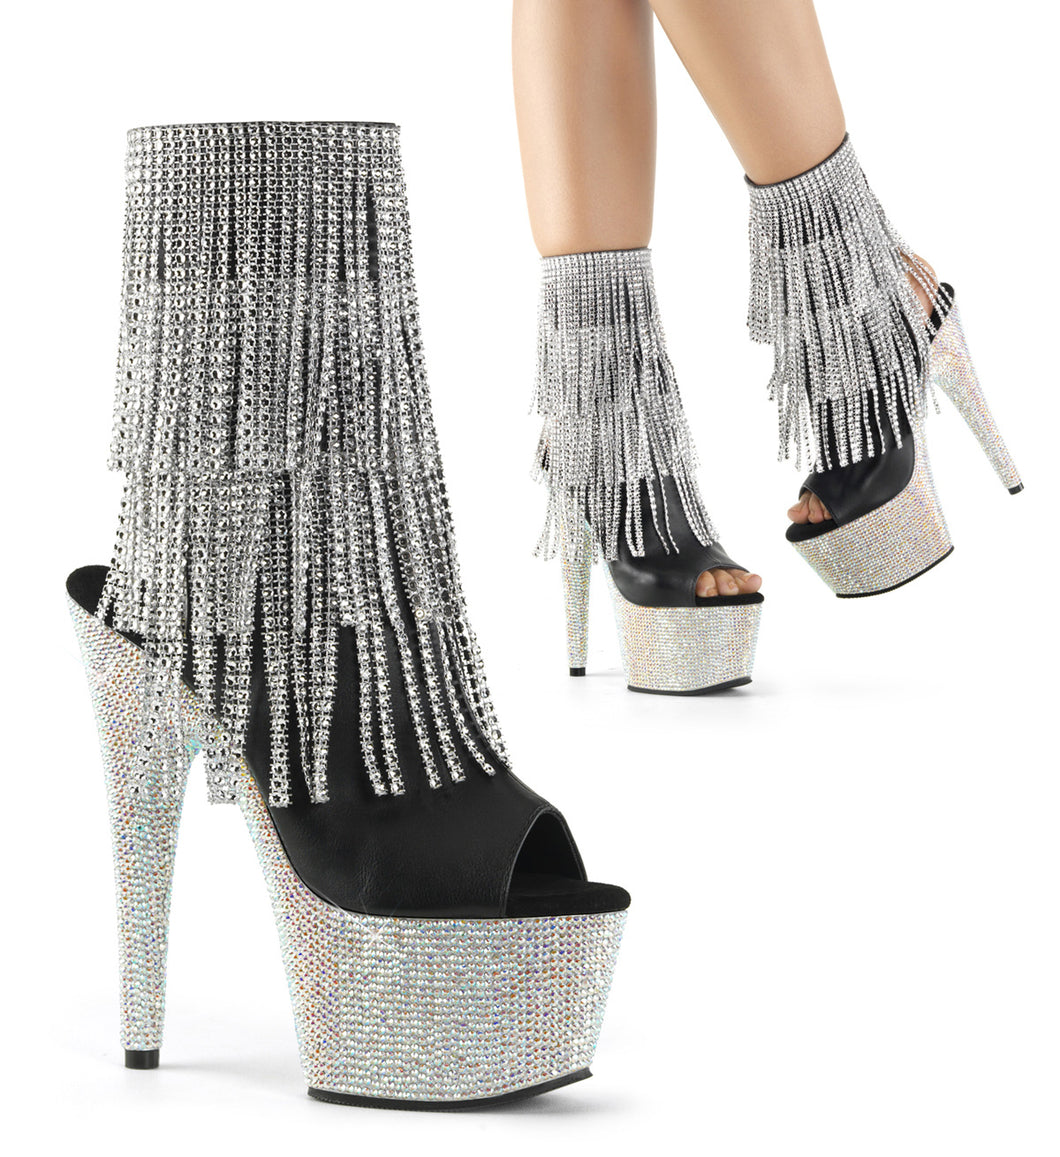 BEJEWELED-1024RSF-7 Pleaser Sexy Ankle Boots 7 Inch Heel, 2 3/4 Inch Platforms Sandals - Miss Hollywood